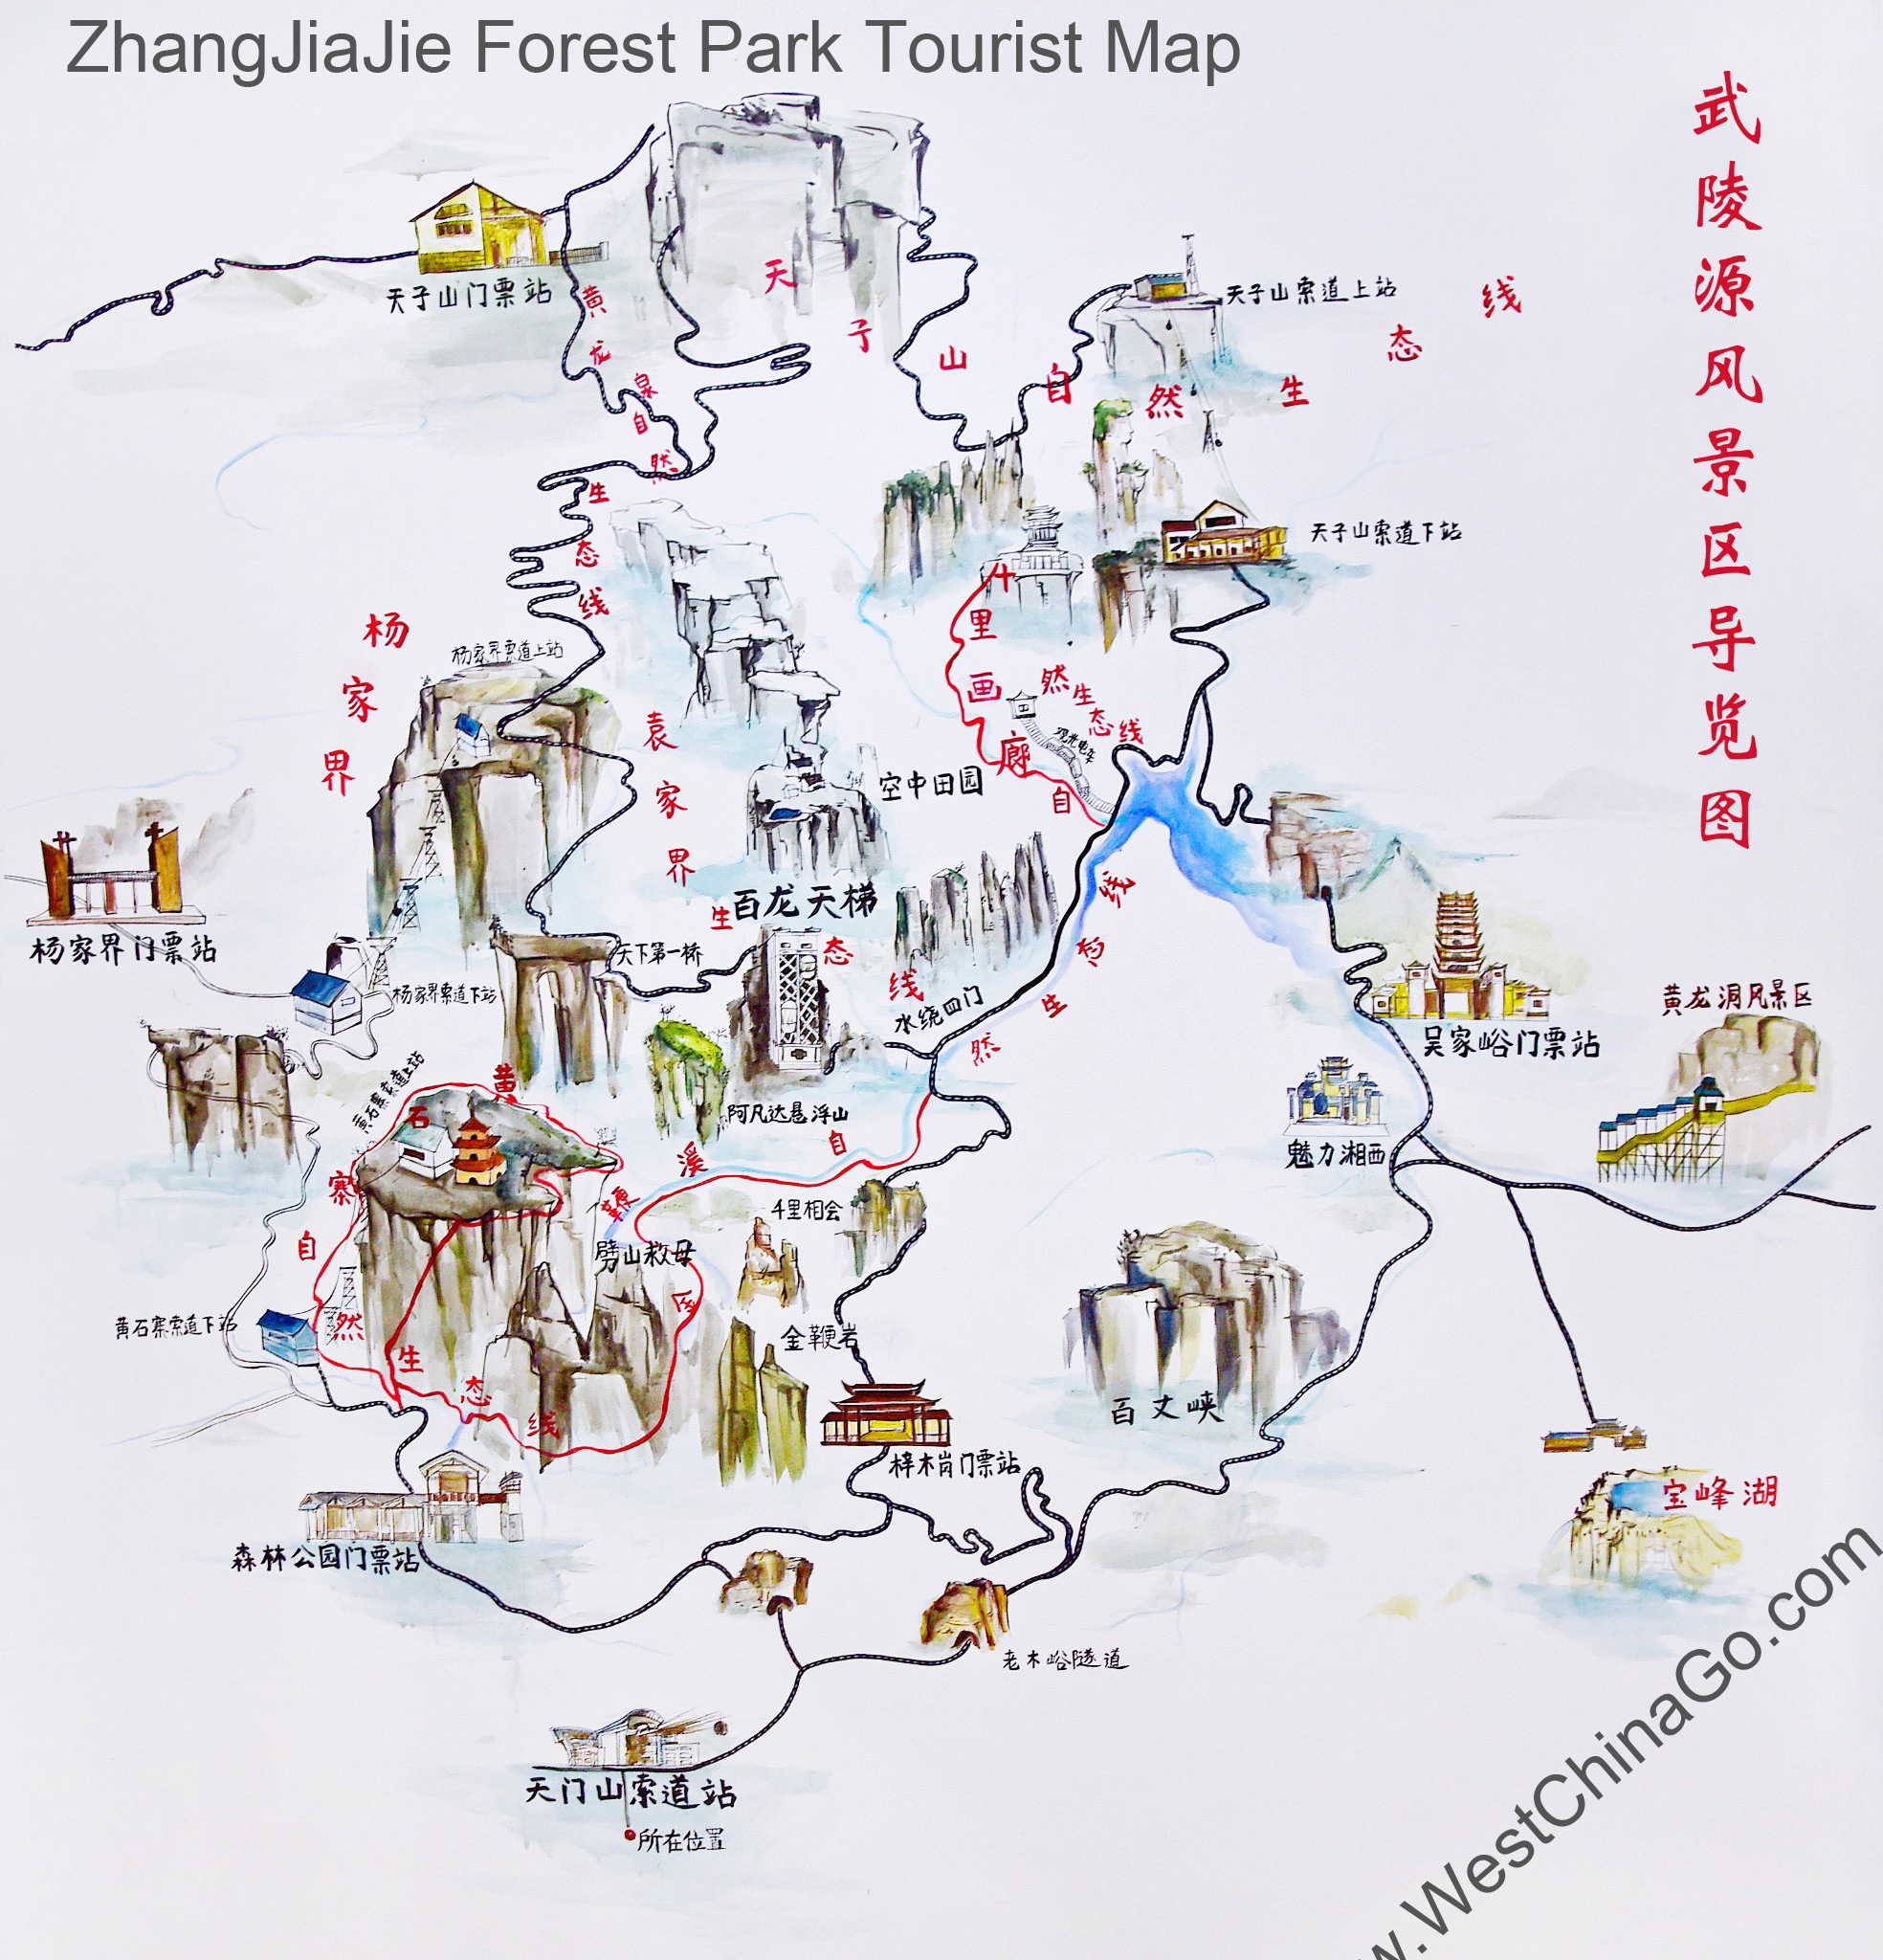 zhangjiajie forest park tourist map